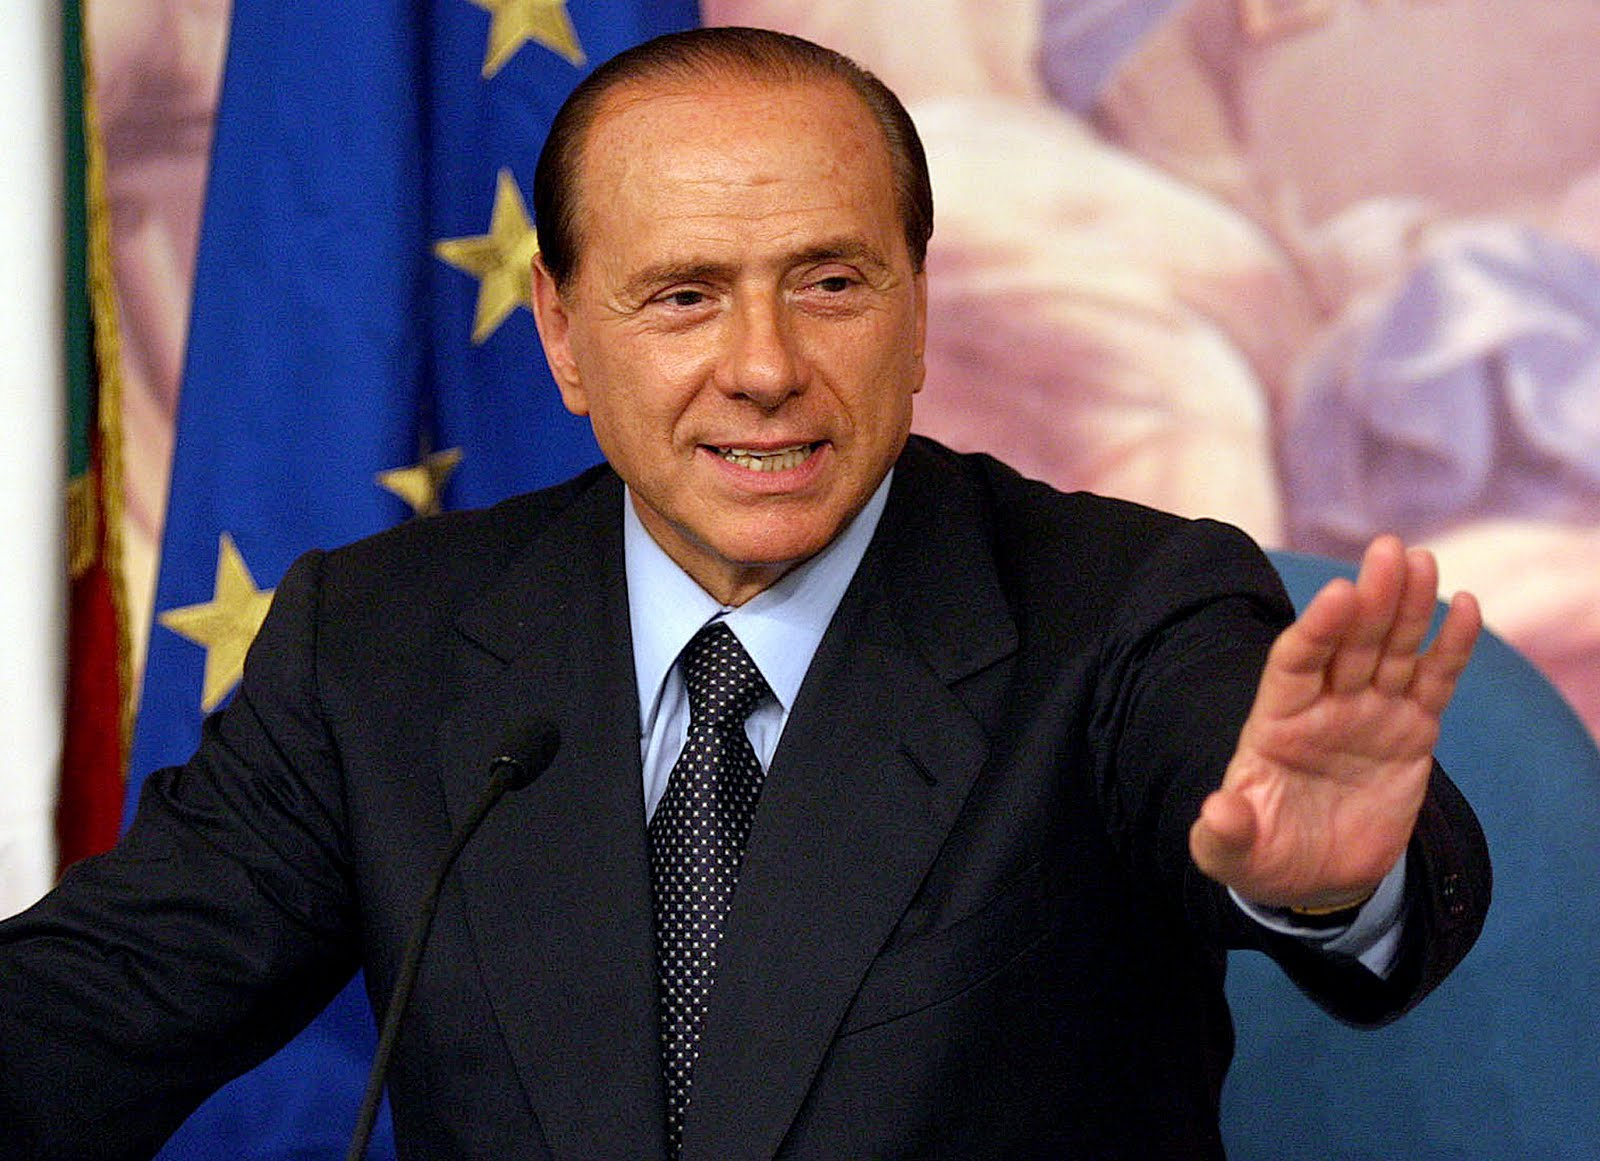 SILVIO BERLUSCONI - The hands of the Prime Minister of Italy! Silvio+berlusconi-1